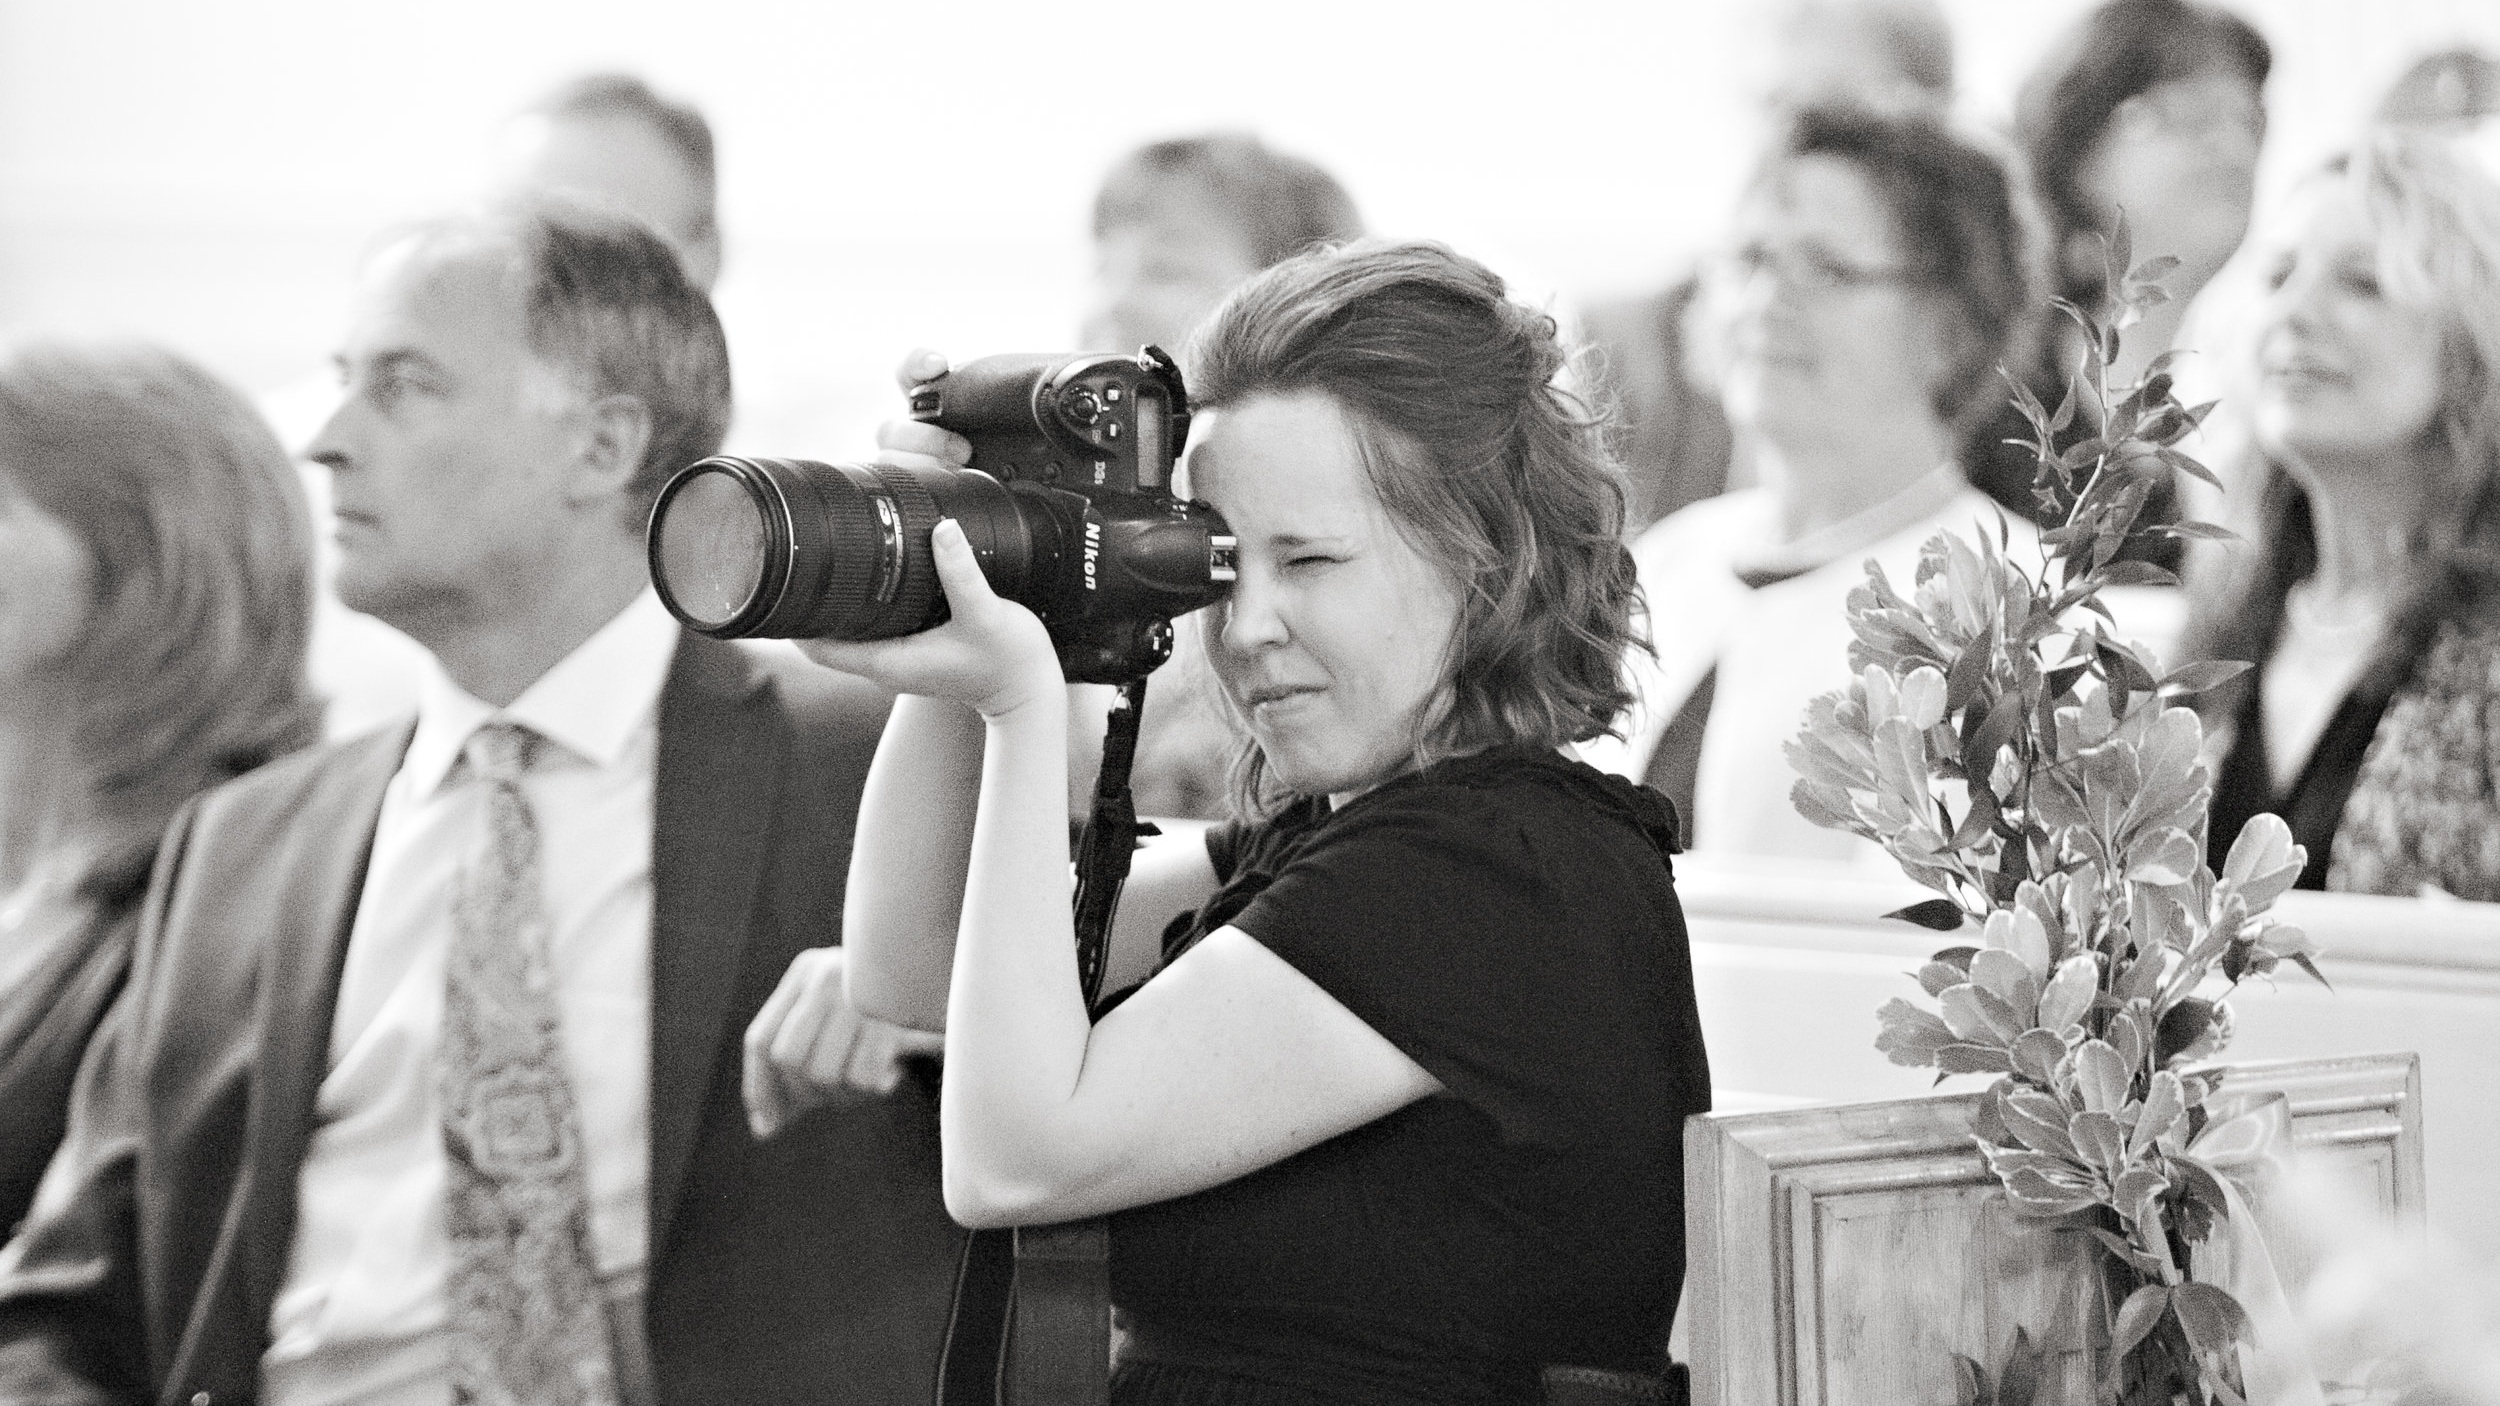 NEED A SECOND SHOOTER? - Are you a photographer in need of a second shooter for a wedding or event?